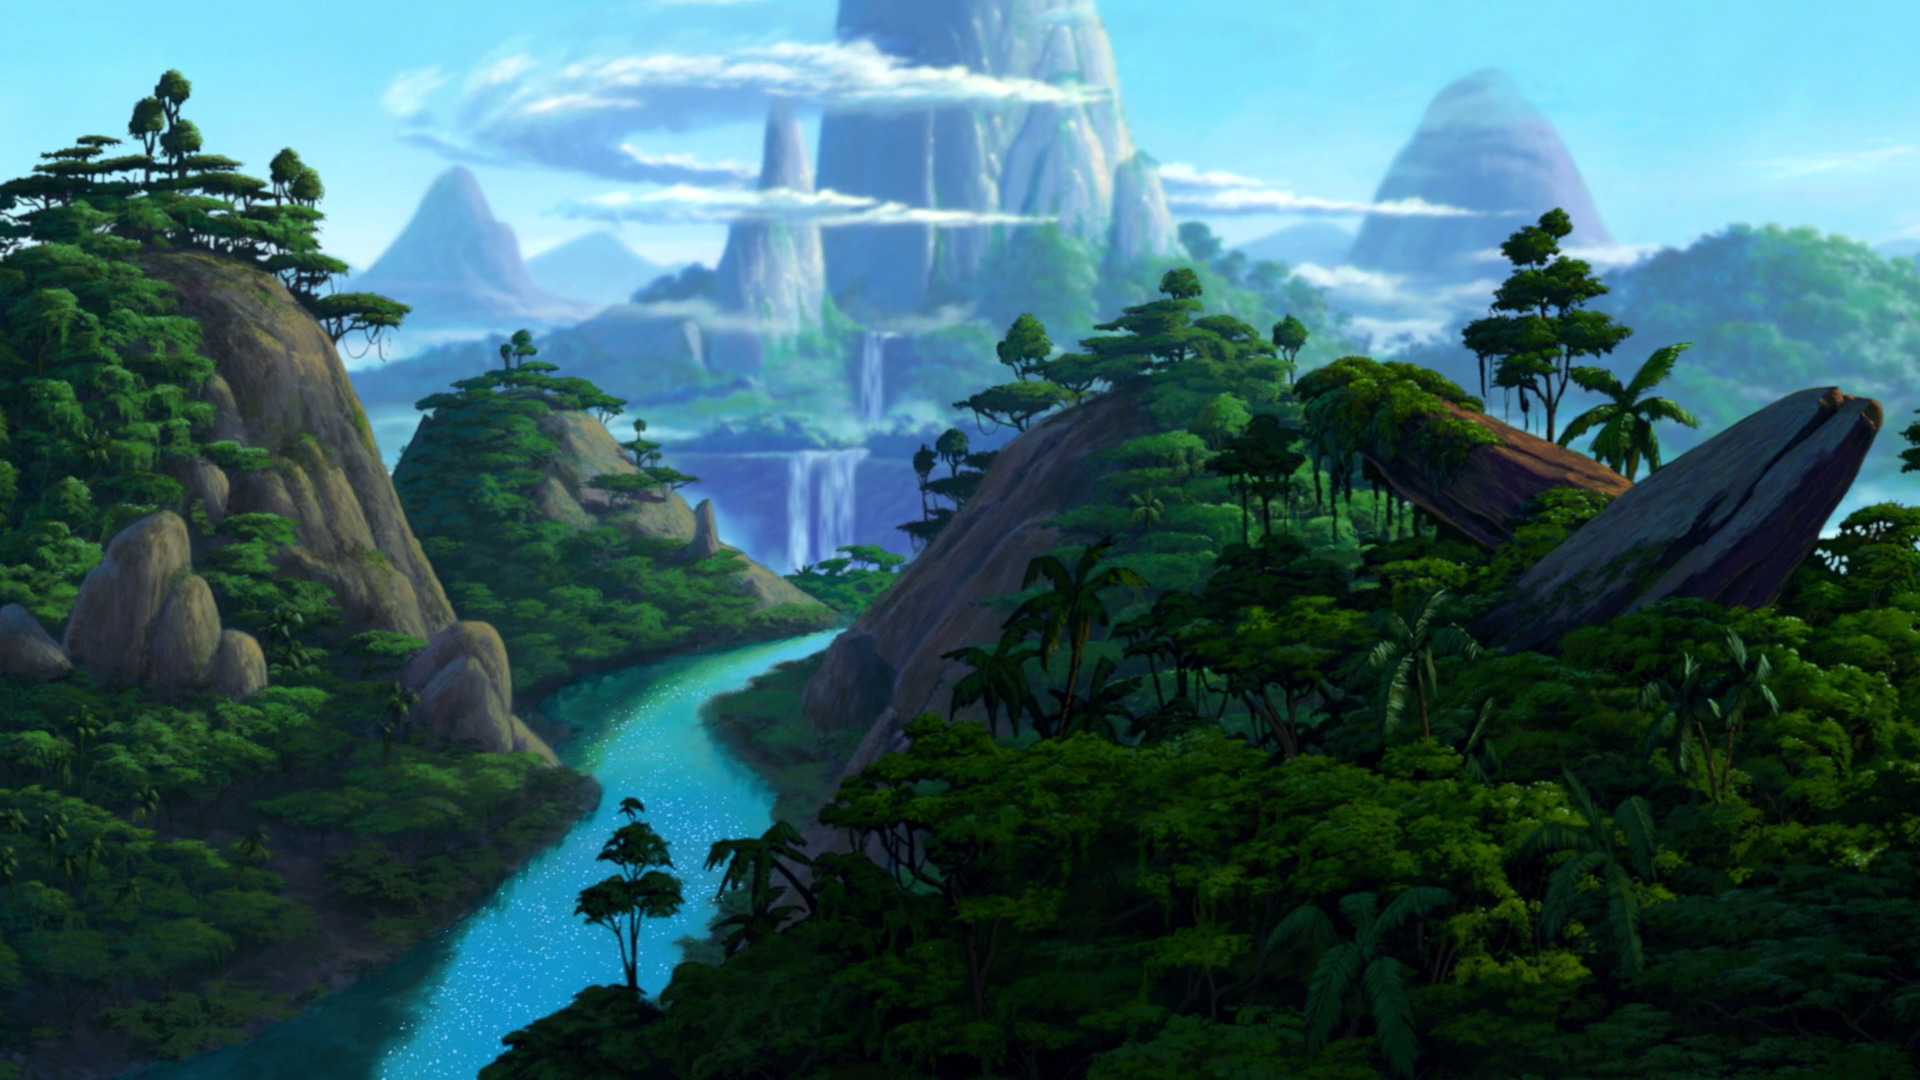 Jungle The Lion King Disney Wiki Fandom Powered By Wikia